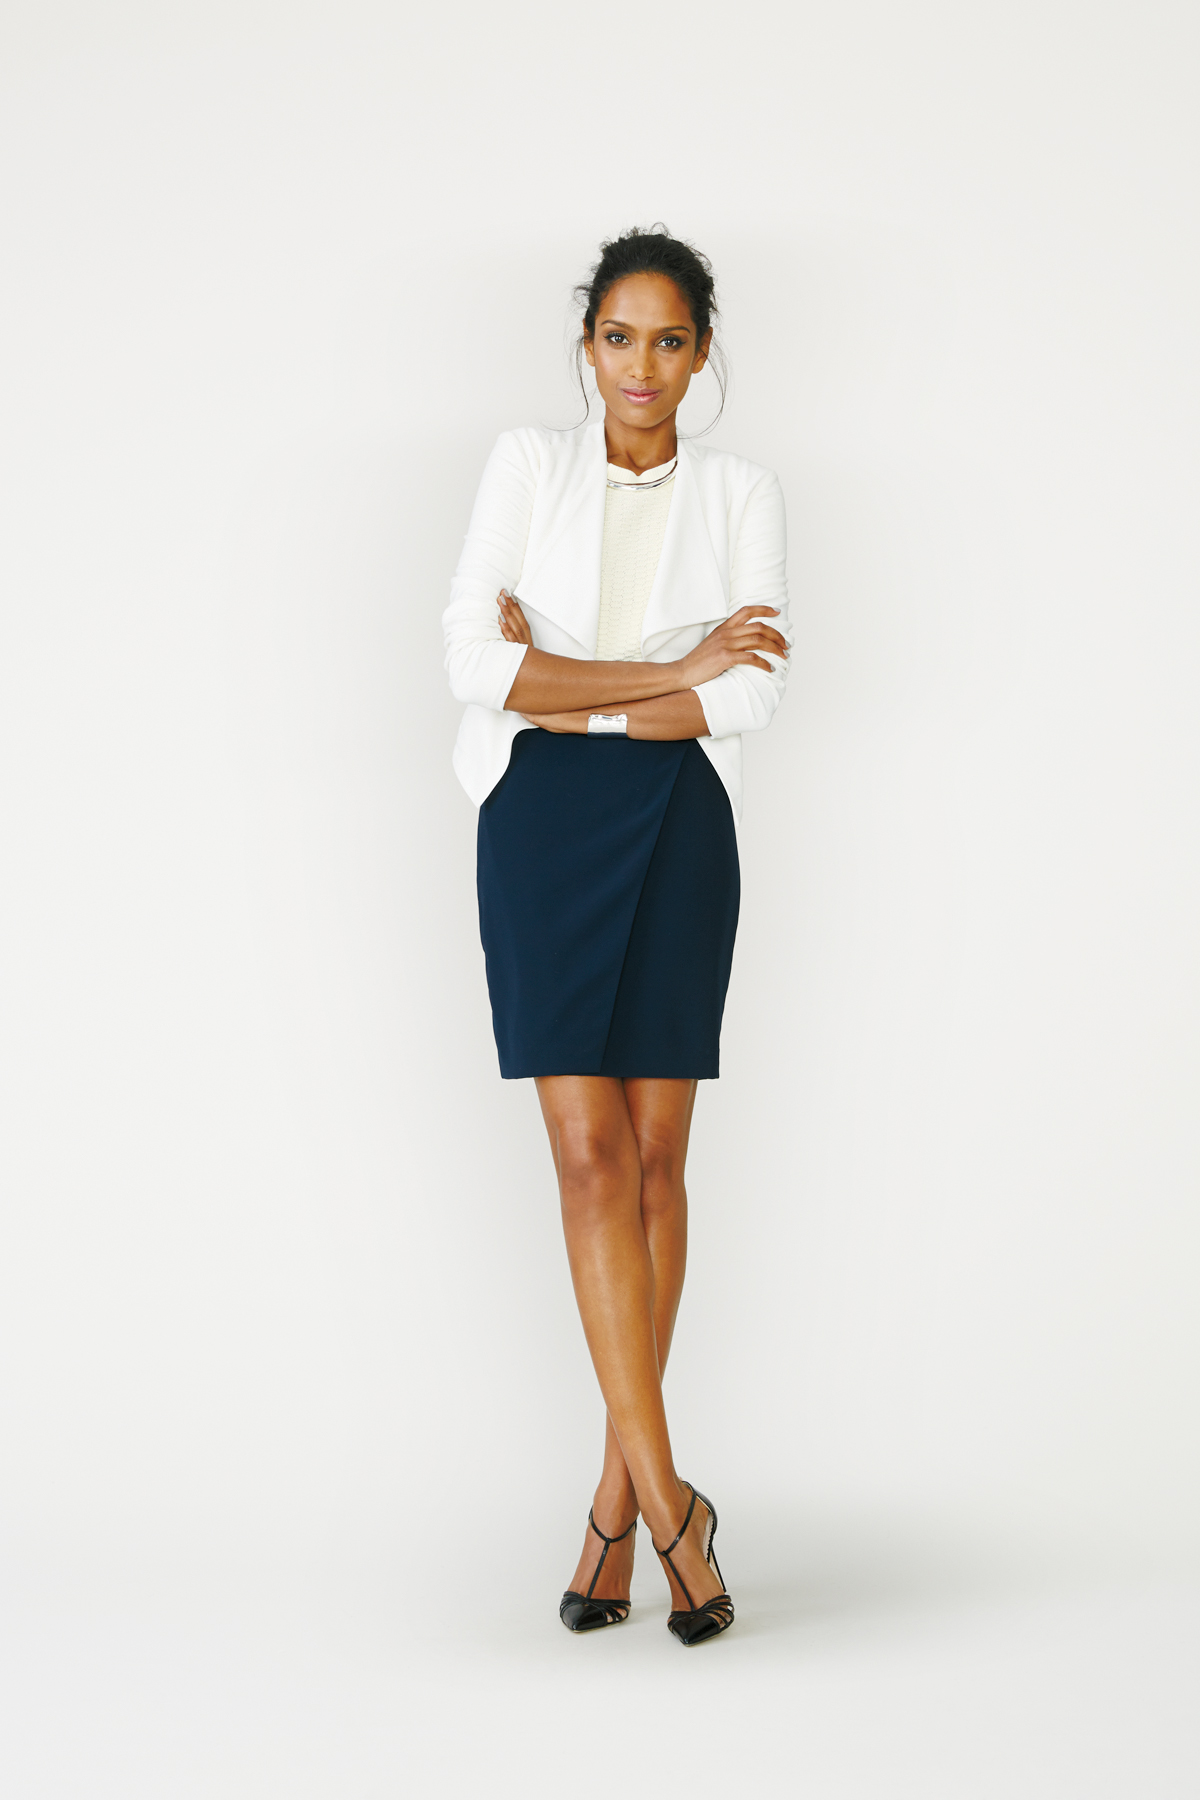 Blazer + Sweater + Pencil Skirt + Heels